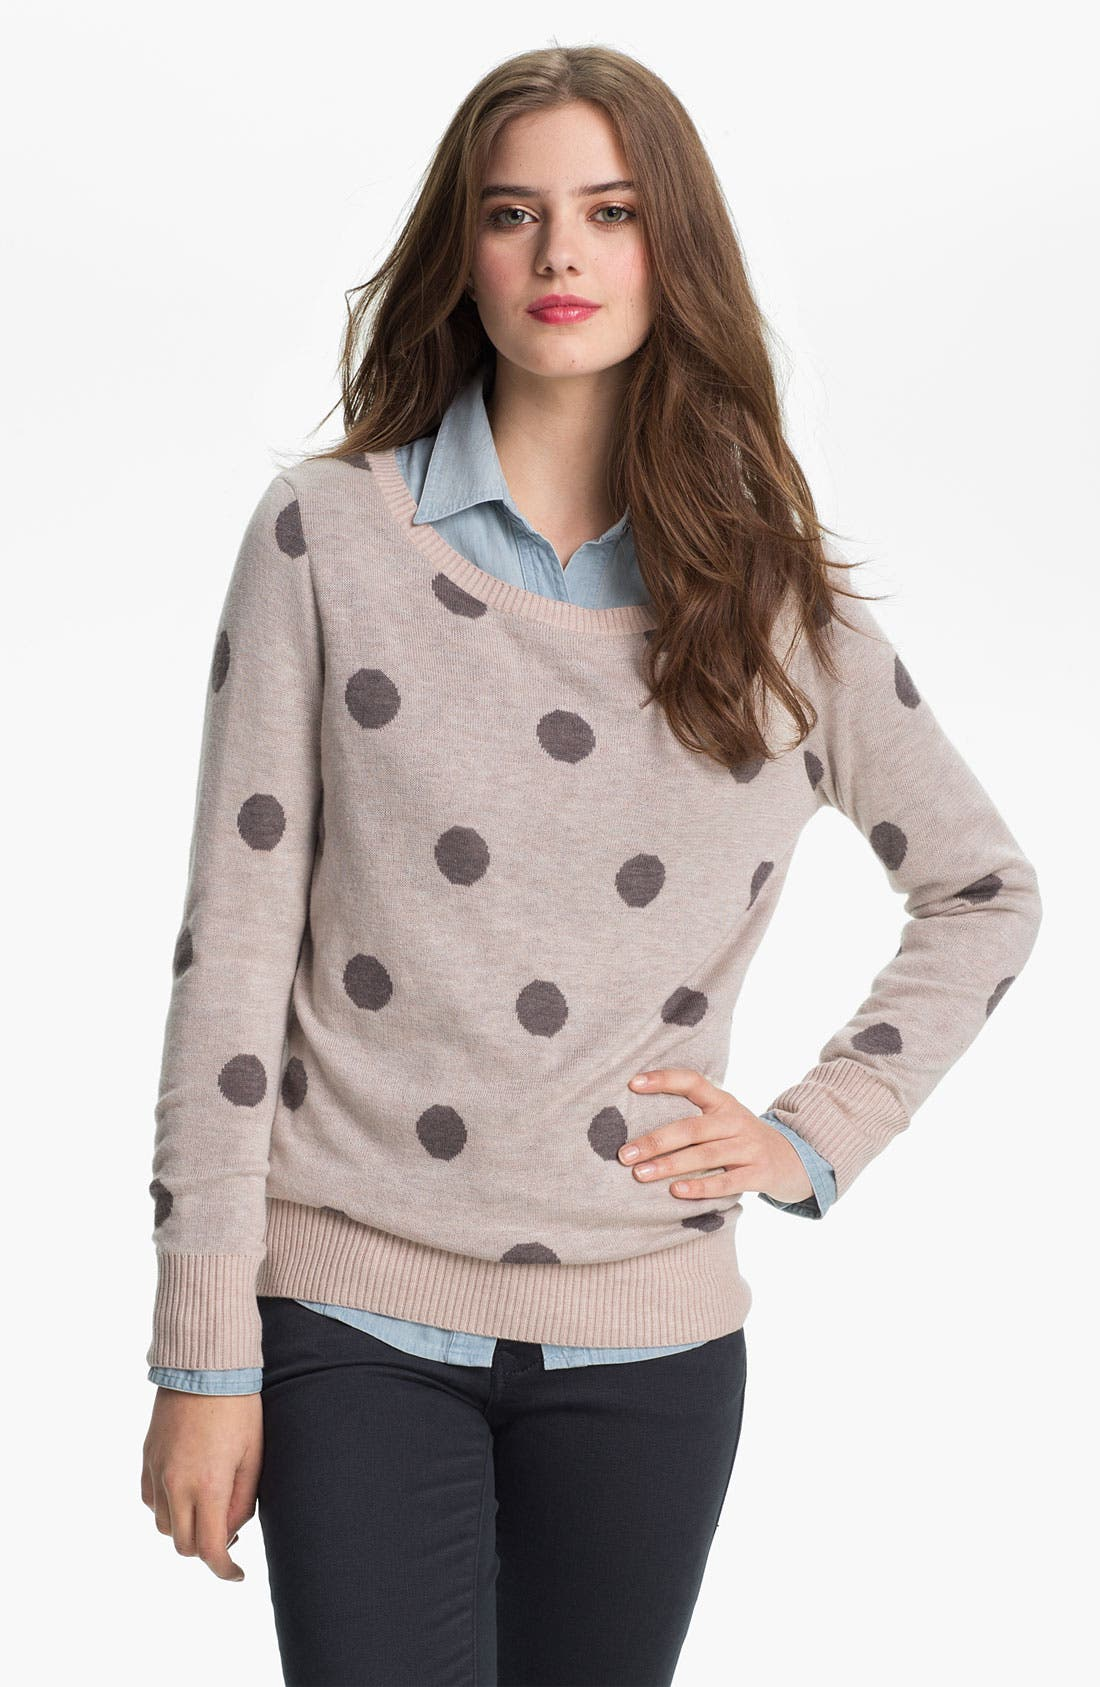 Alternate Image 1 Selected - Max & Mia 'Big Dot' Sweater